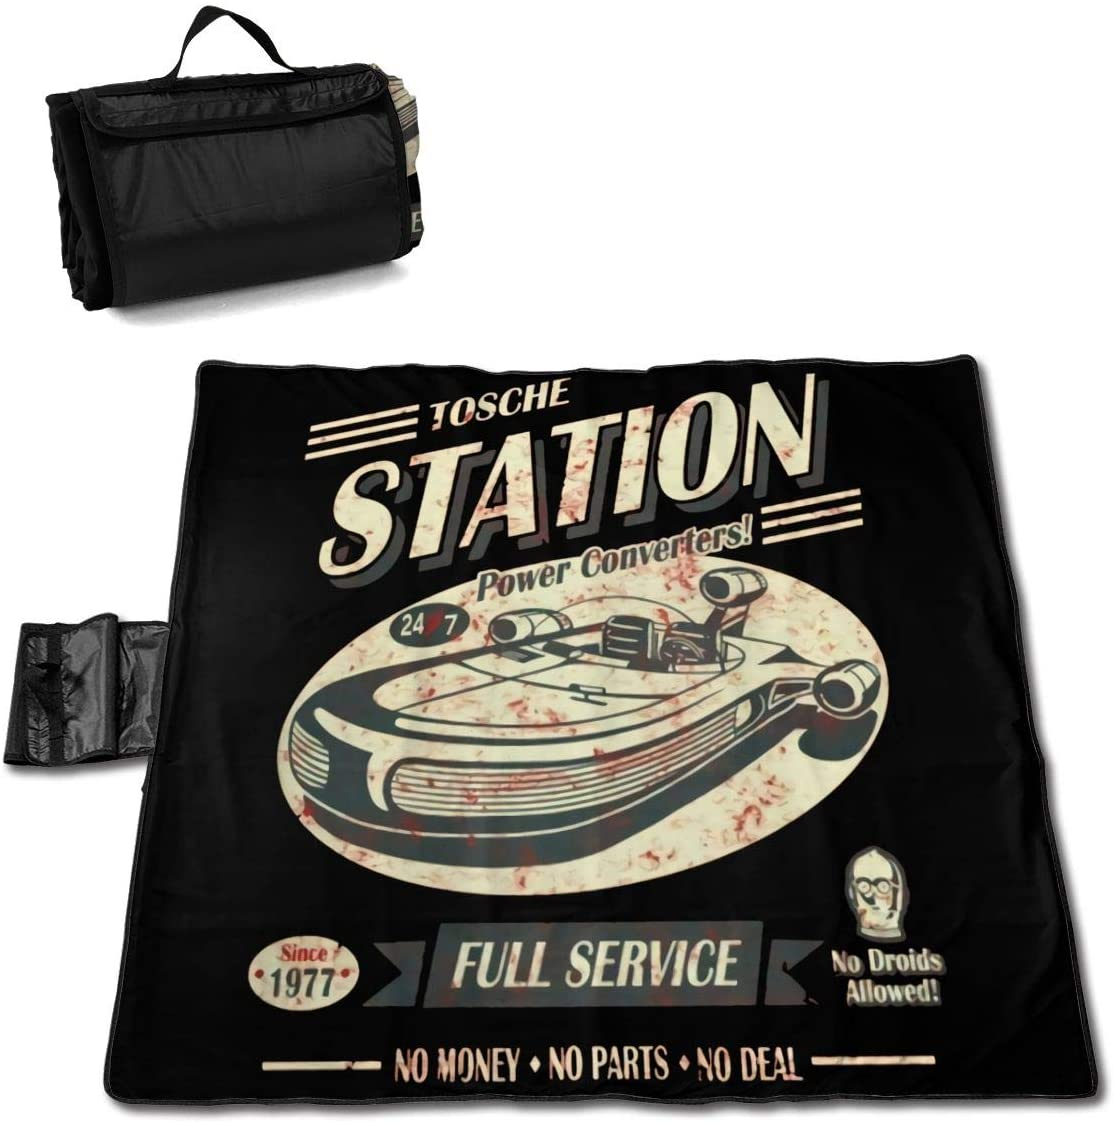 Htw Tosche Station Portable Printed Picnic Blanket Waterproof 59x57(in)